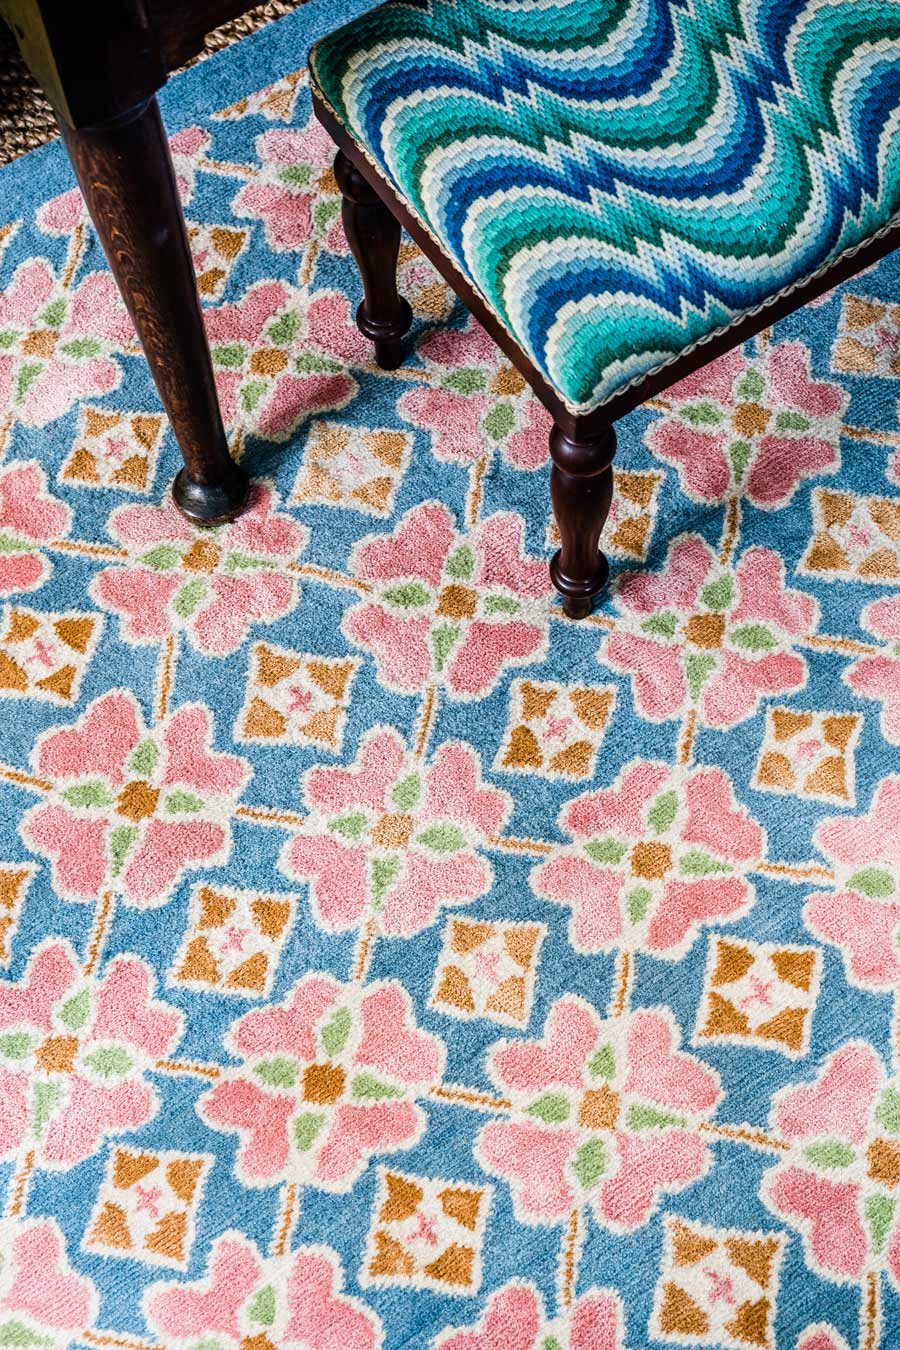 close up of flora rug by anna spiro in floral repeat pattern with a blue border